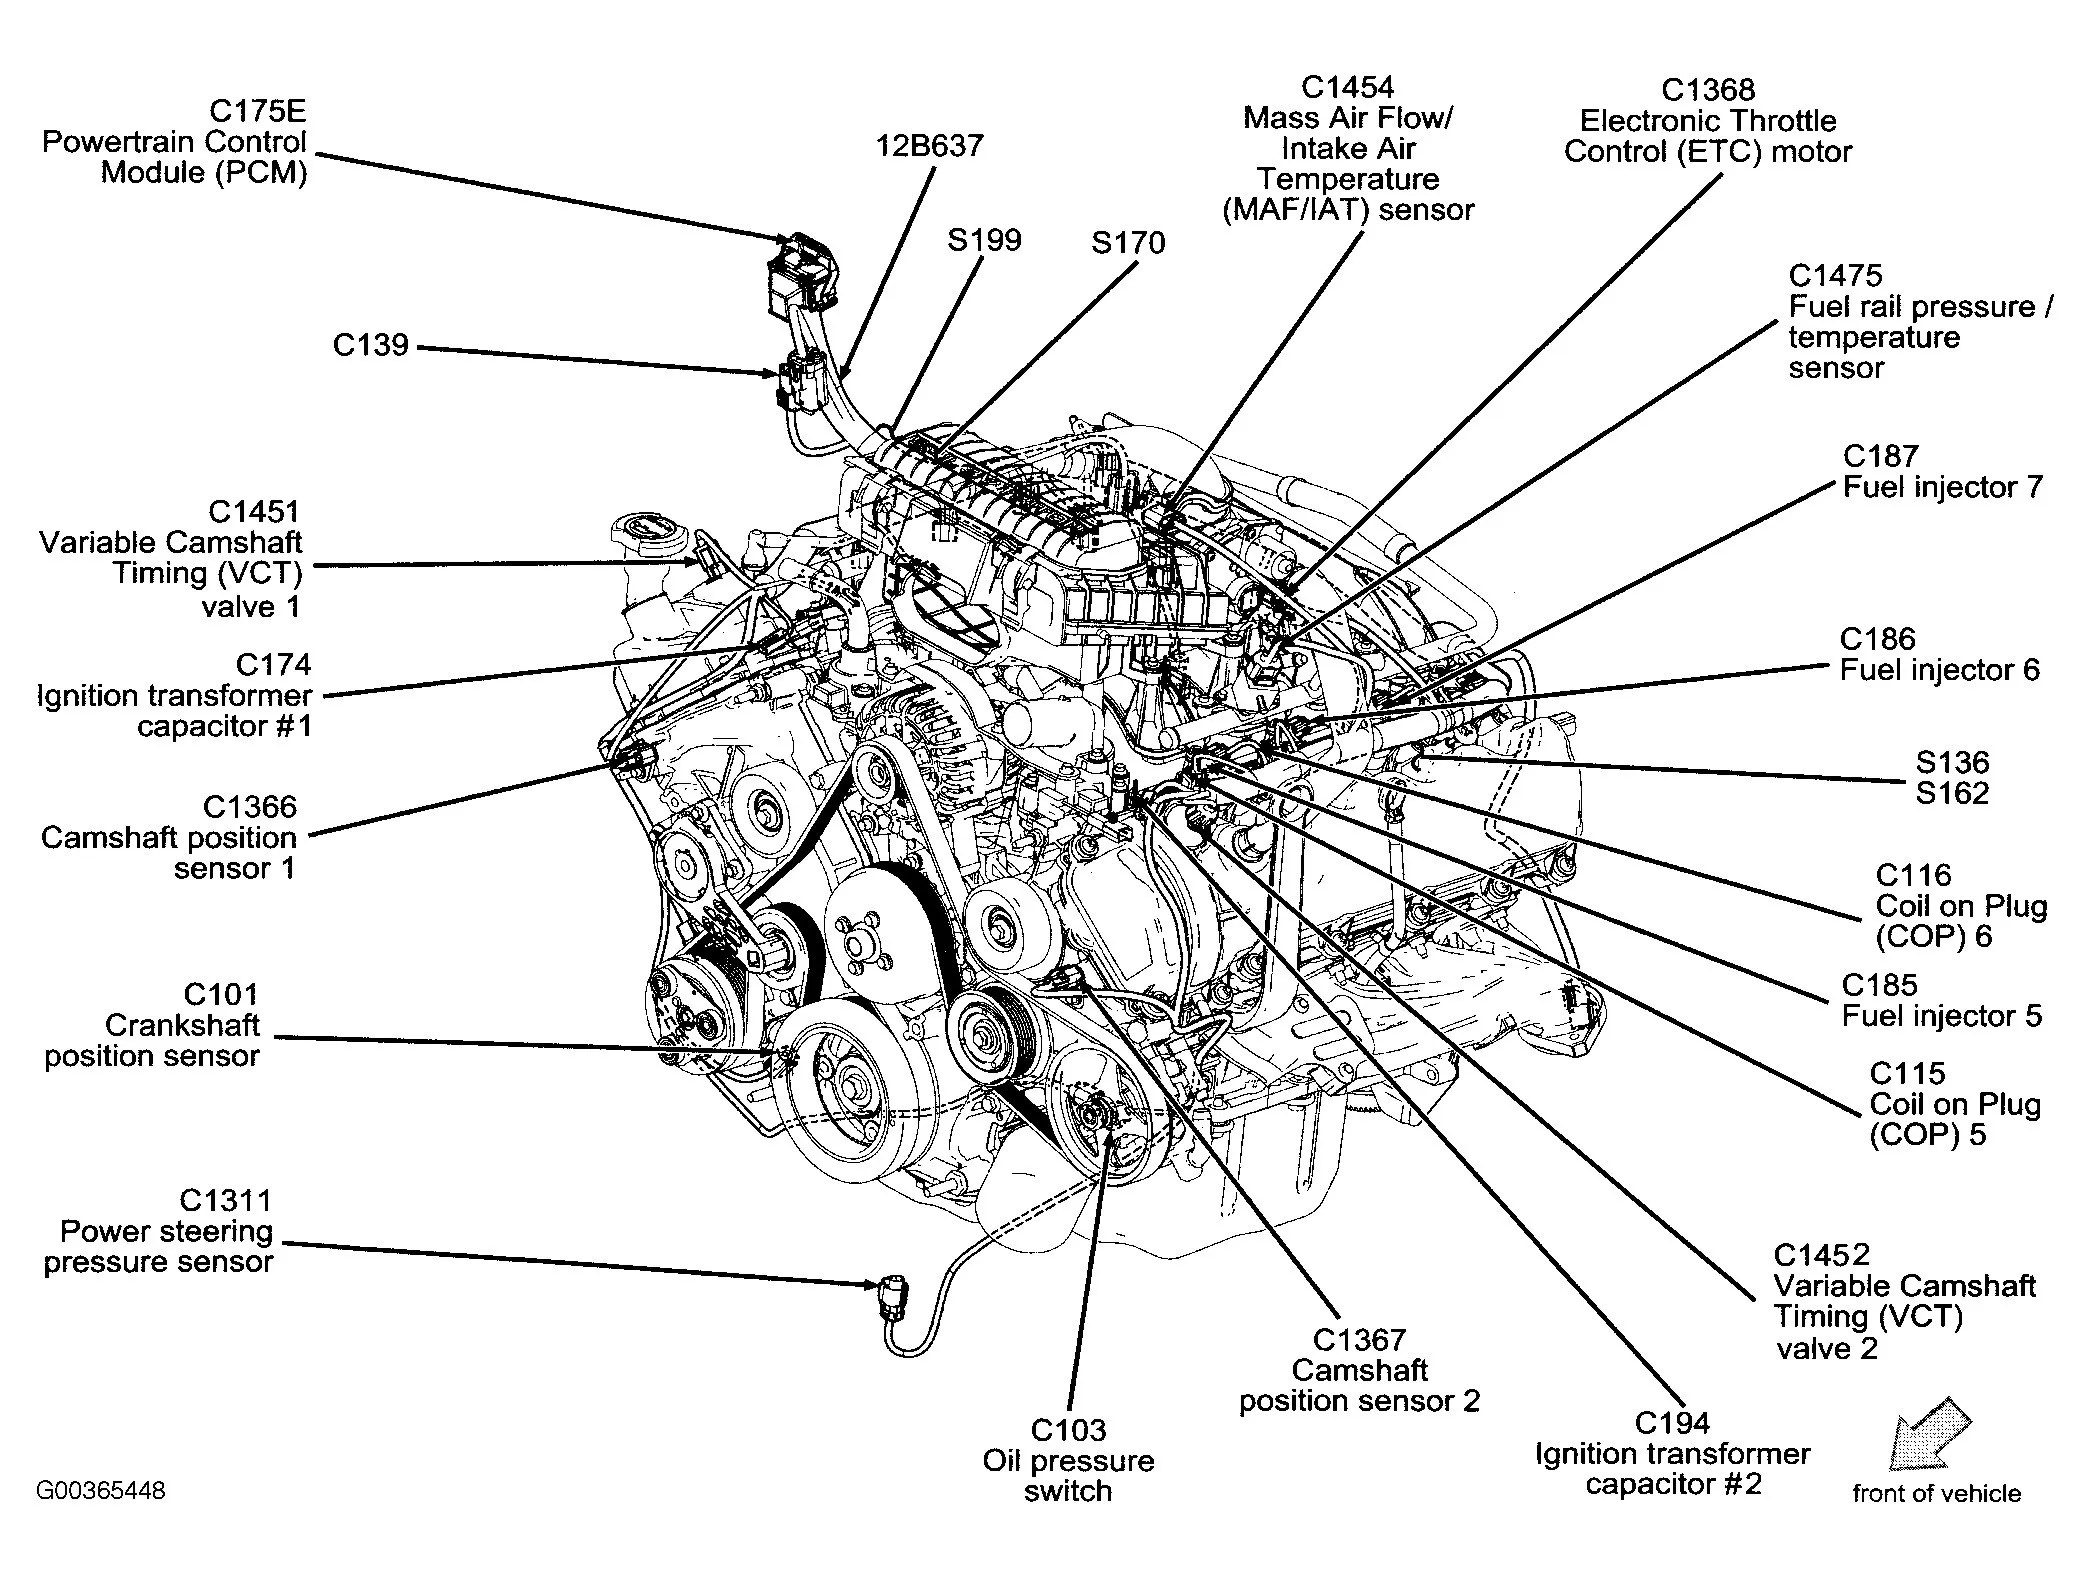 hight resolution of 2004 ford ranger 3 0 engine diagram wiring library 2000 ford ranger 3 0 engine ranger 3 0 engine diagram source 98 ford explorer